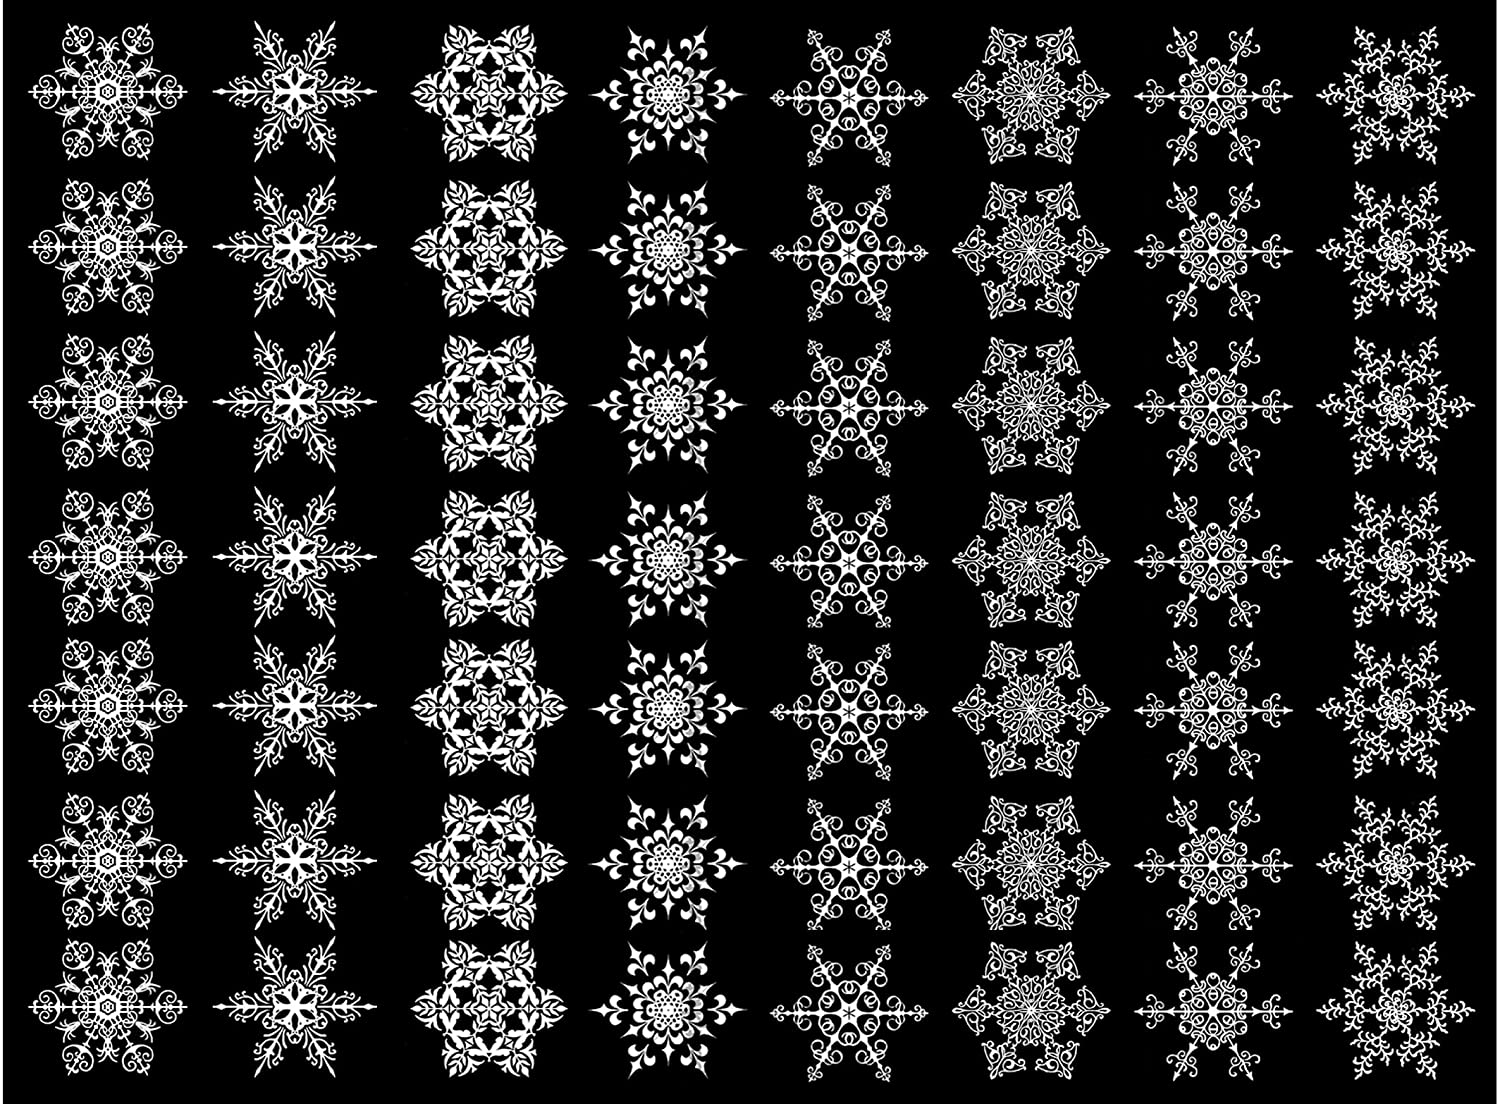 Snowflakes 56 pcs 3/4' White 16CC579 Fused Glass Decals Must be kiln fired Captive Decals